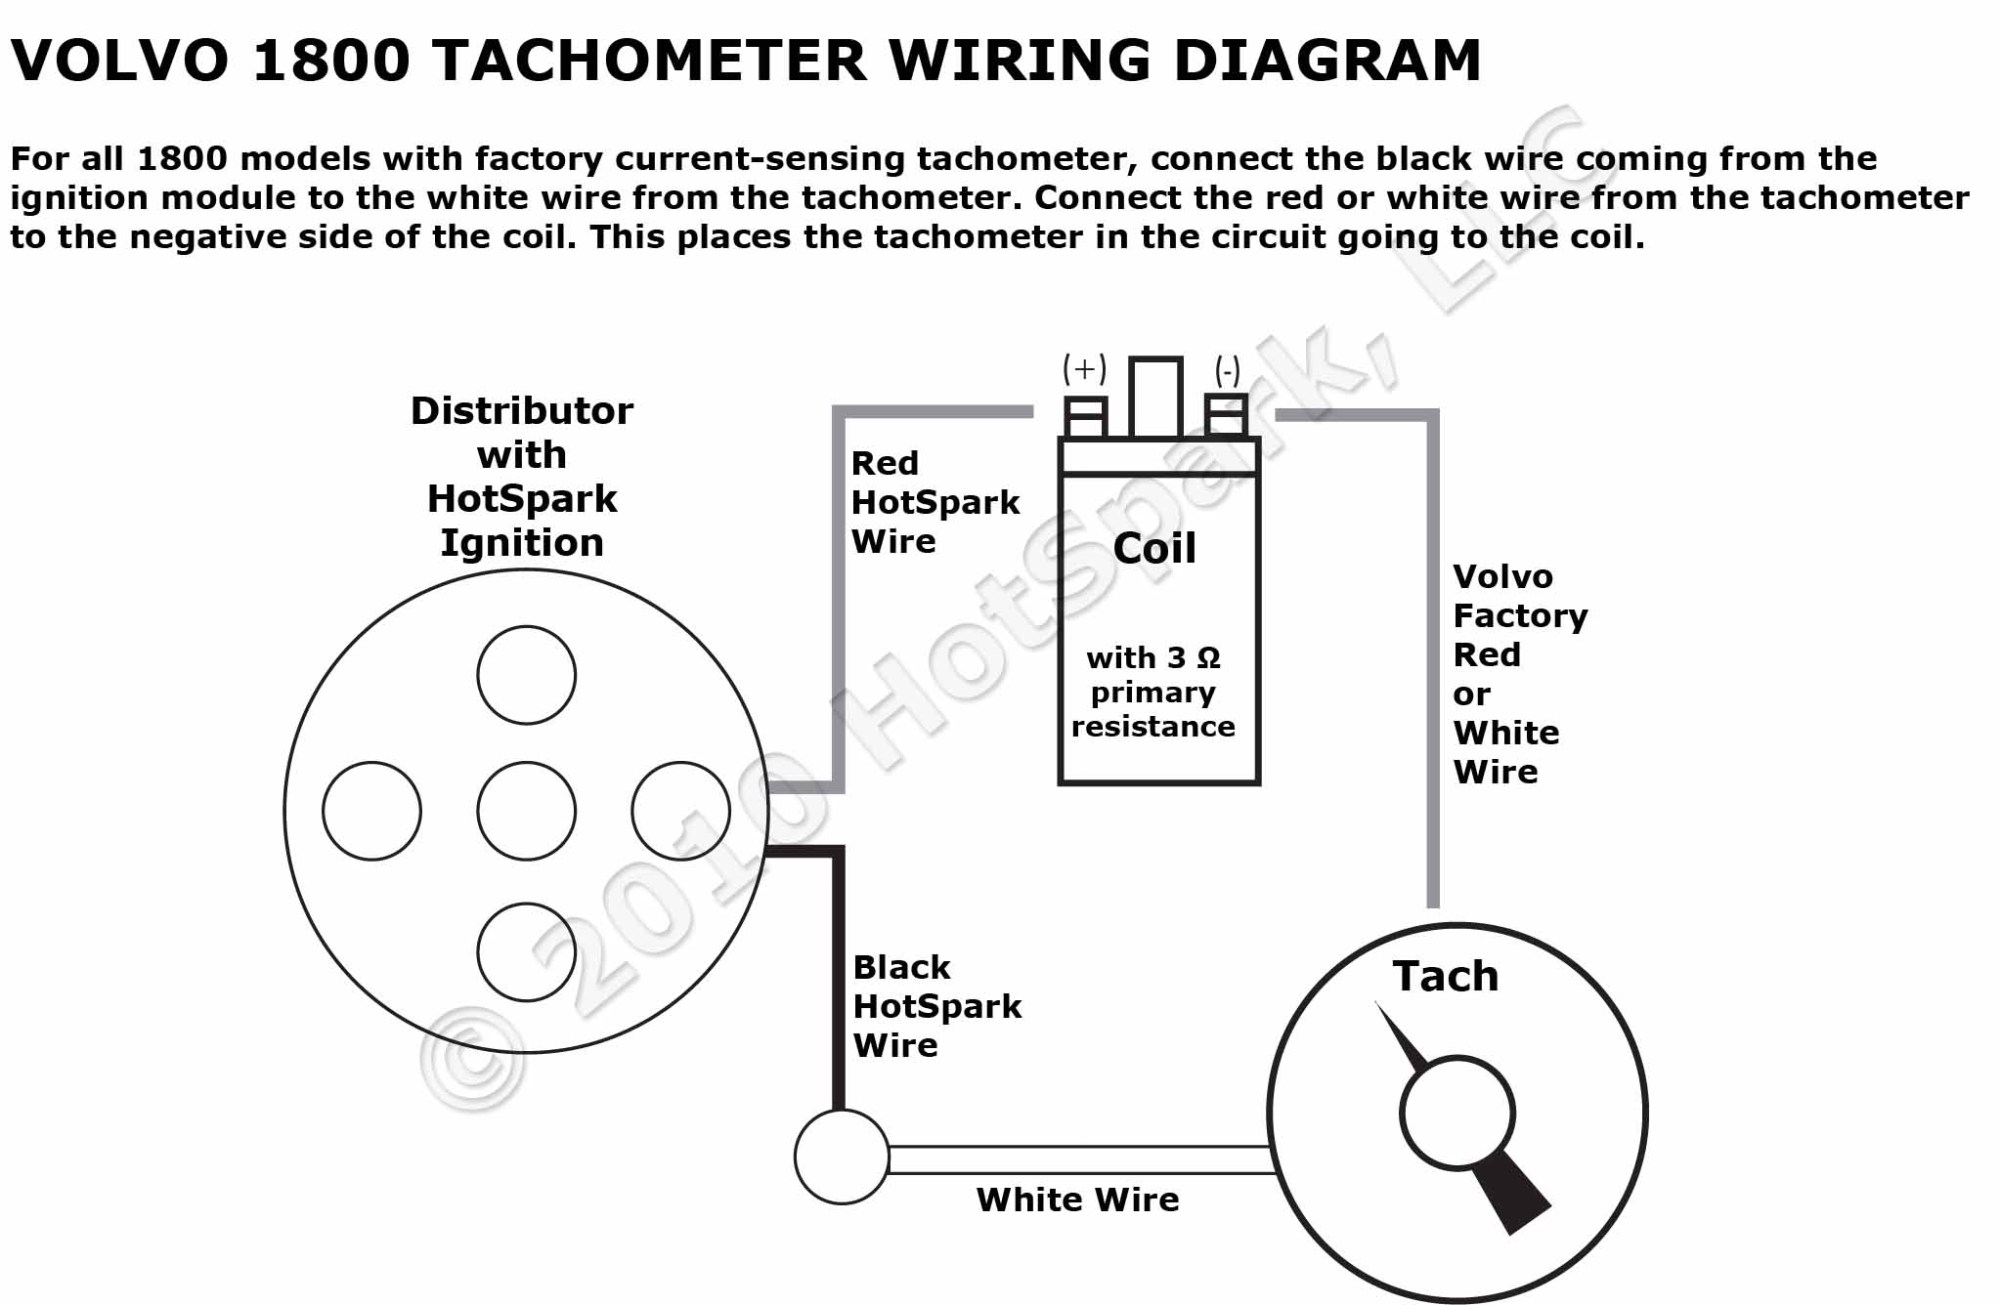 hight resolution of volvo 1800 tachometer wiring diagram with hotspark ignition chrysler electronic ignition diagram electronic ignition diagram